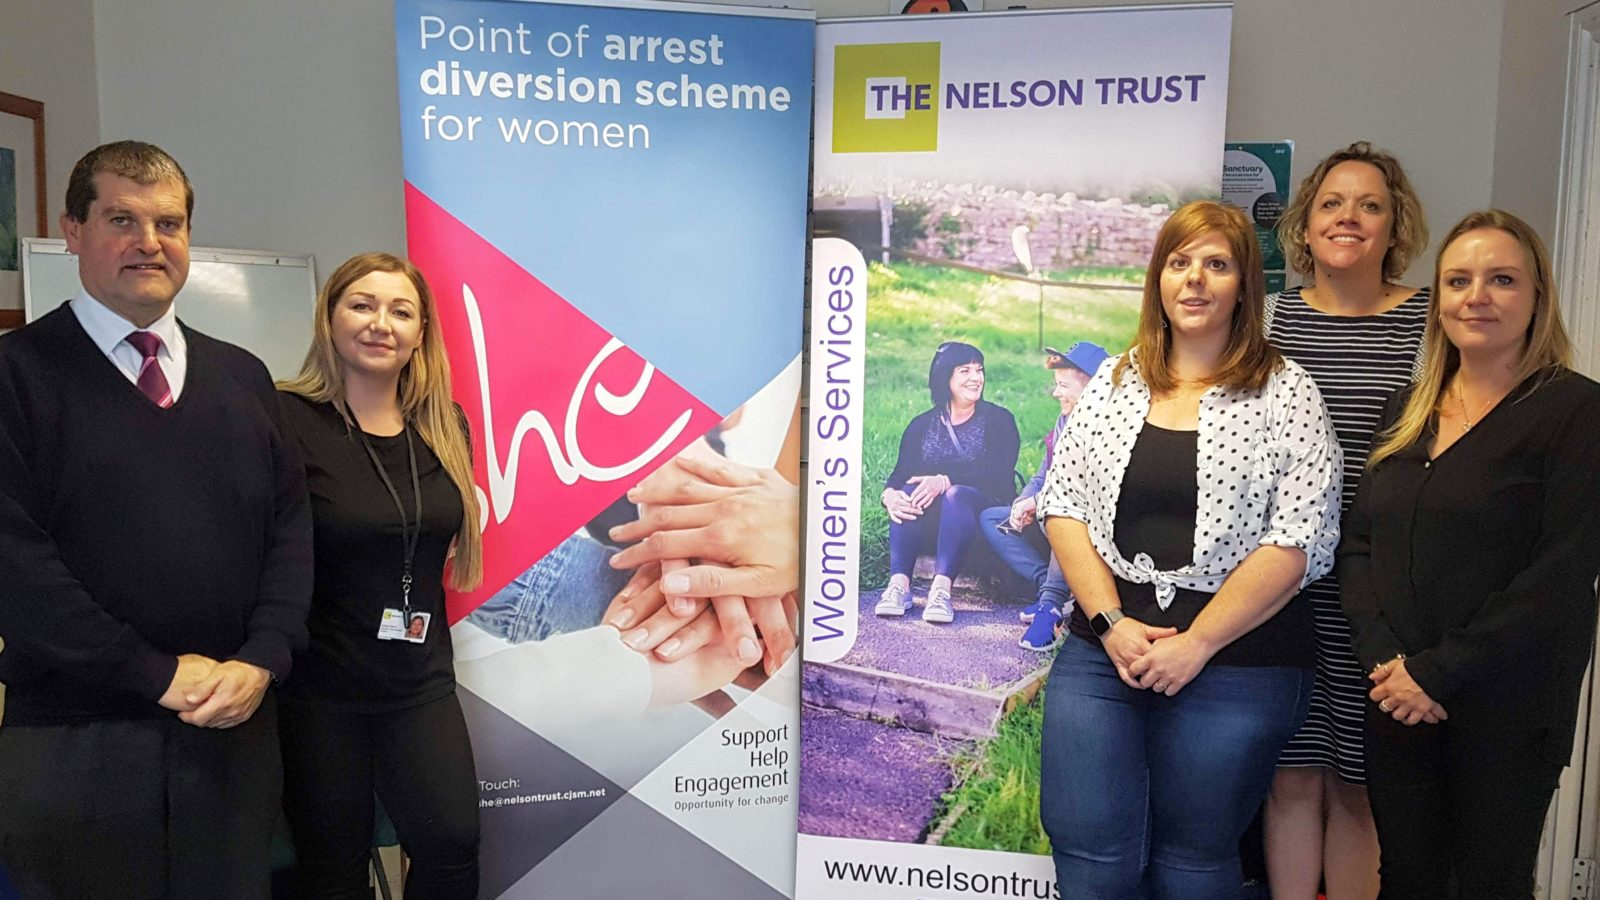 L-R-James-Freeman-of-First-Kirsty-Harris-and-Kate-Hebden-of-The-Nelson-Trust-Rebecca-Marshall-of-Avon-and-Somerset-Police-and-NIki-Gould-of-The-Nelson-Trust-at-the-opening-of-a-new-womens-centre-i-e1565860206164-1600x900.jpg